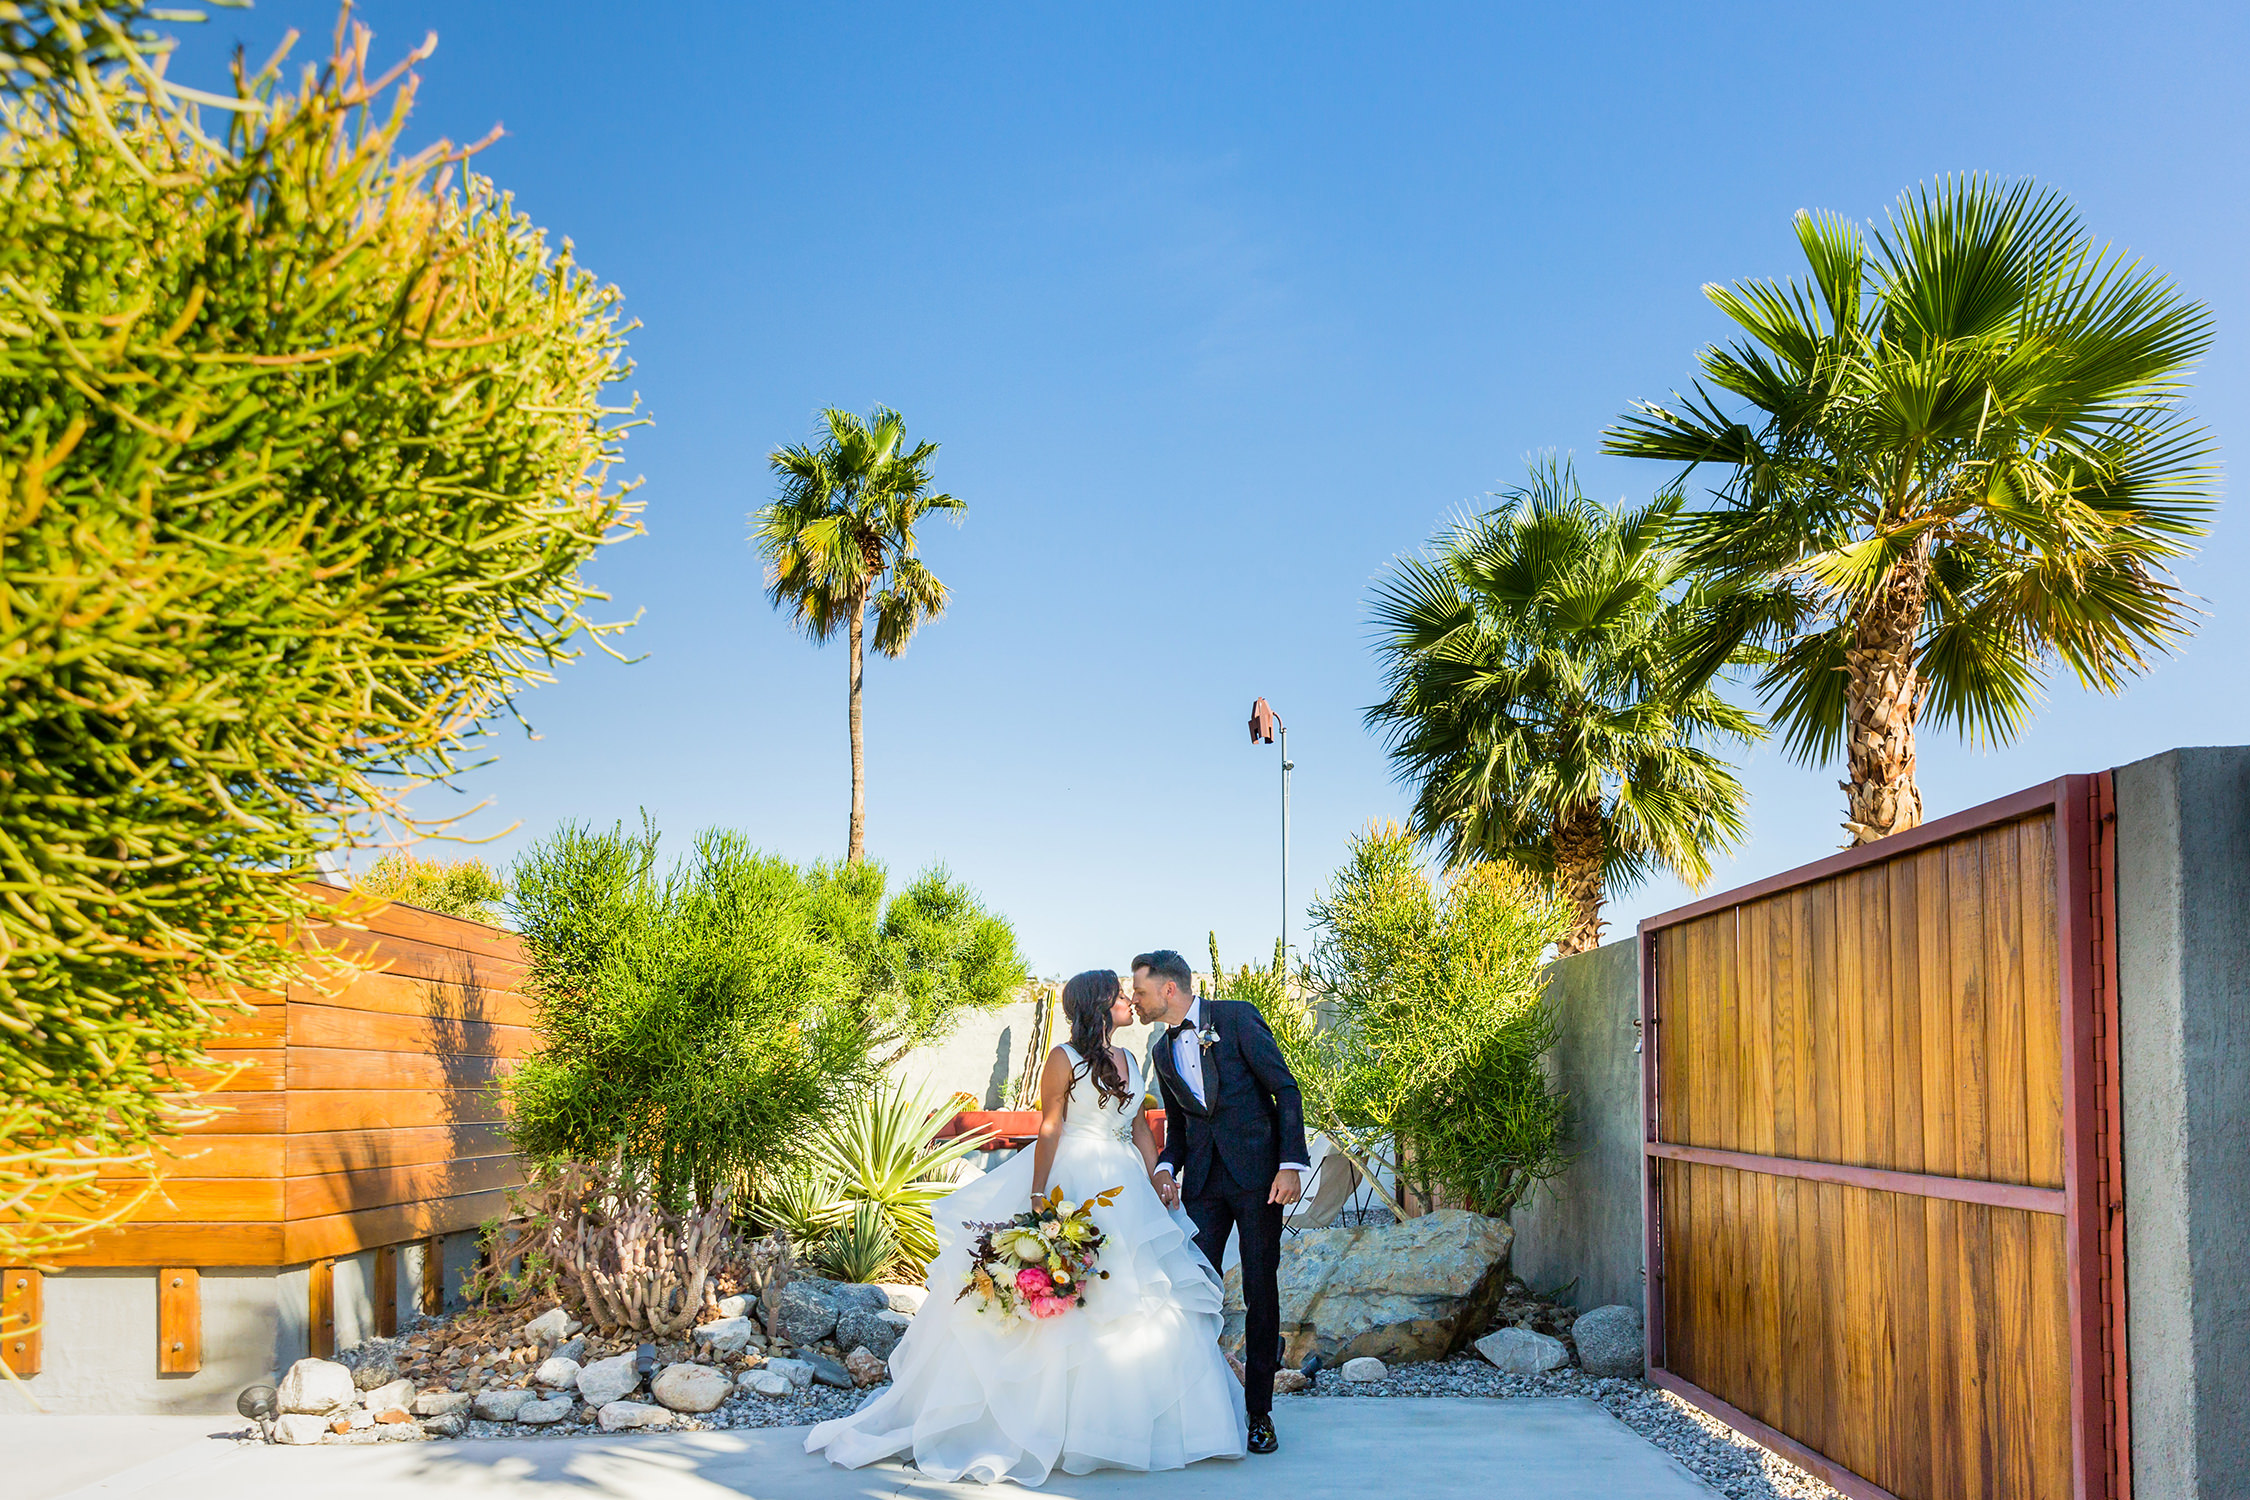 bycphotography the lautner compound palm springs wedding 1